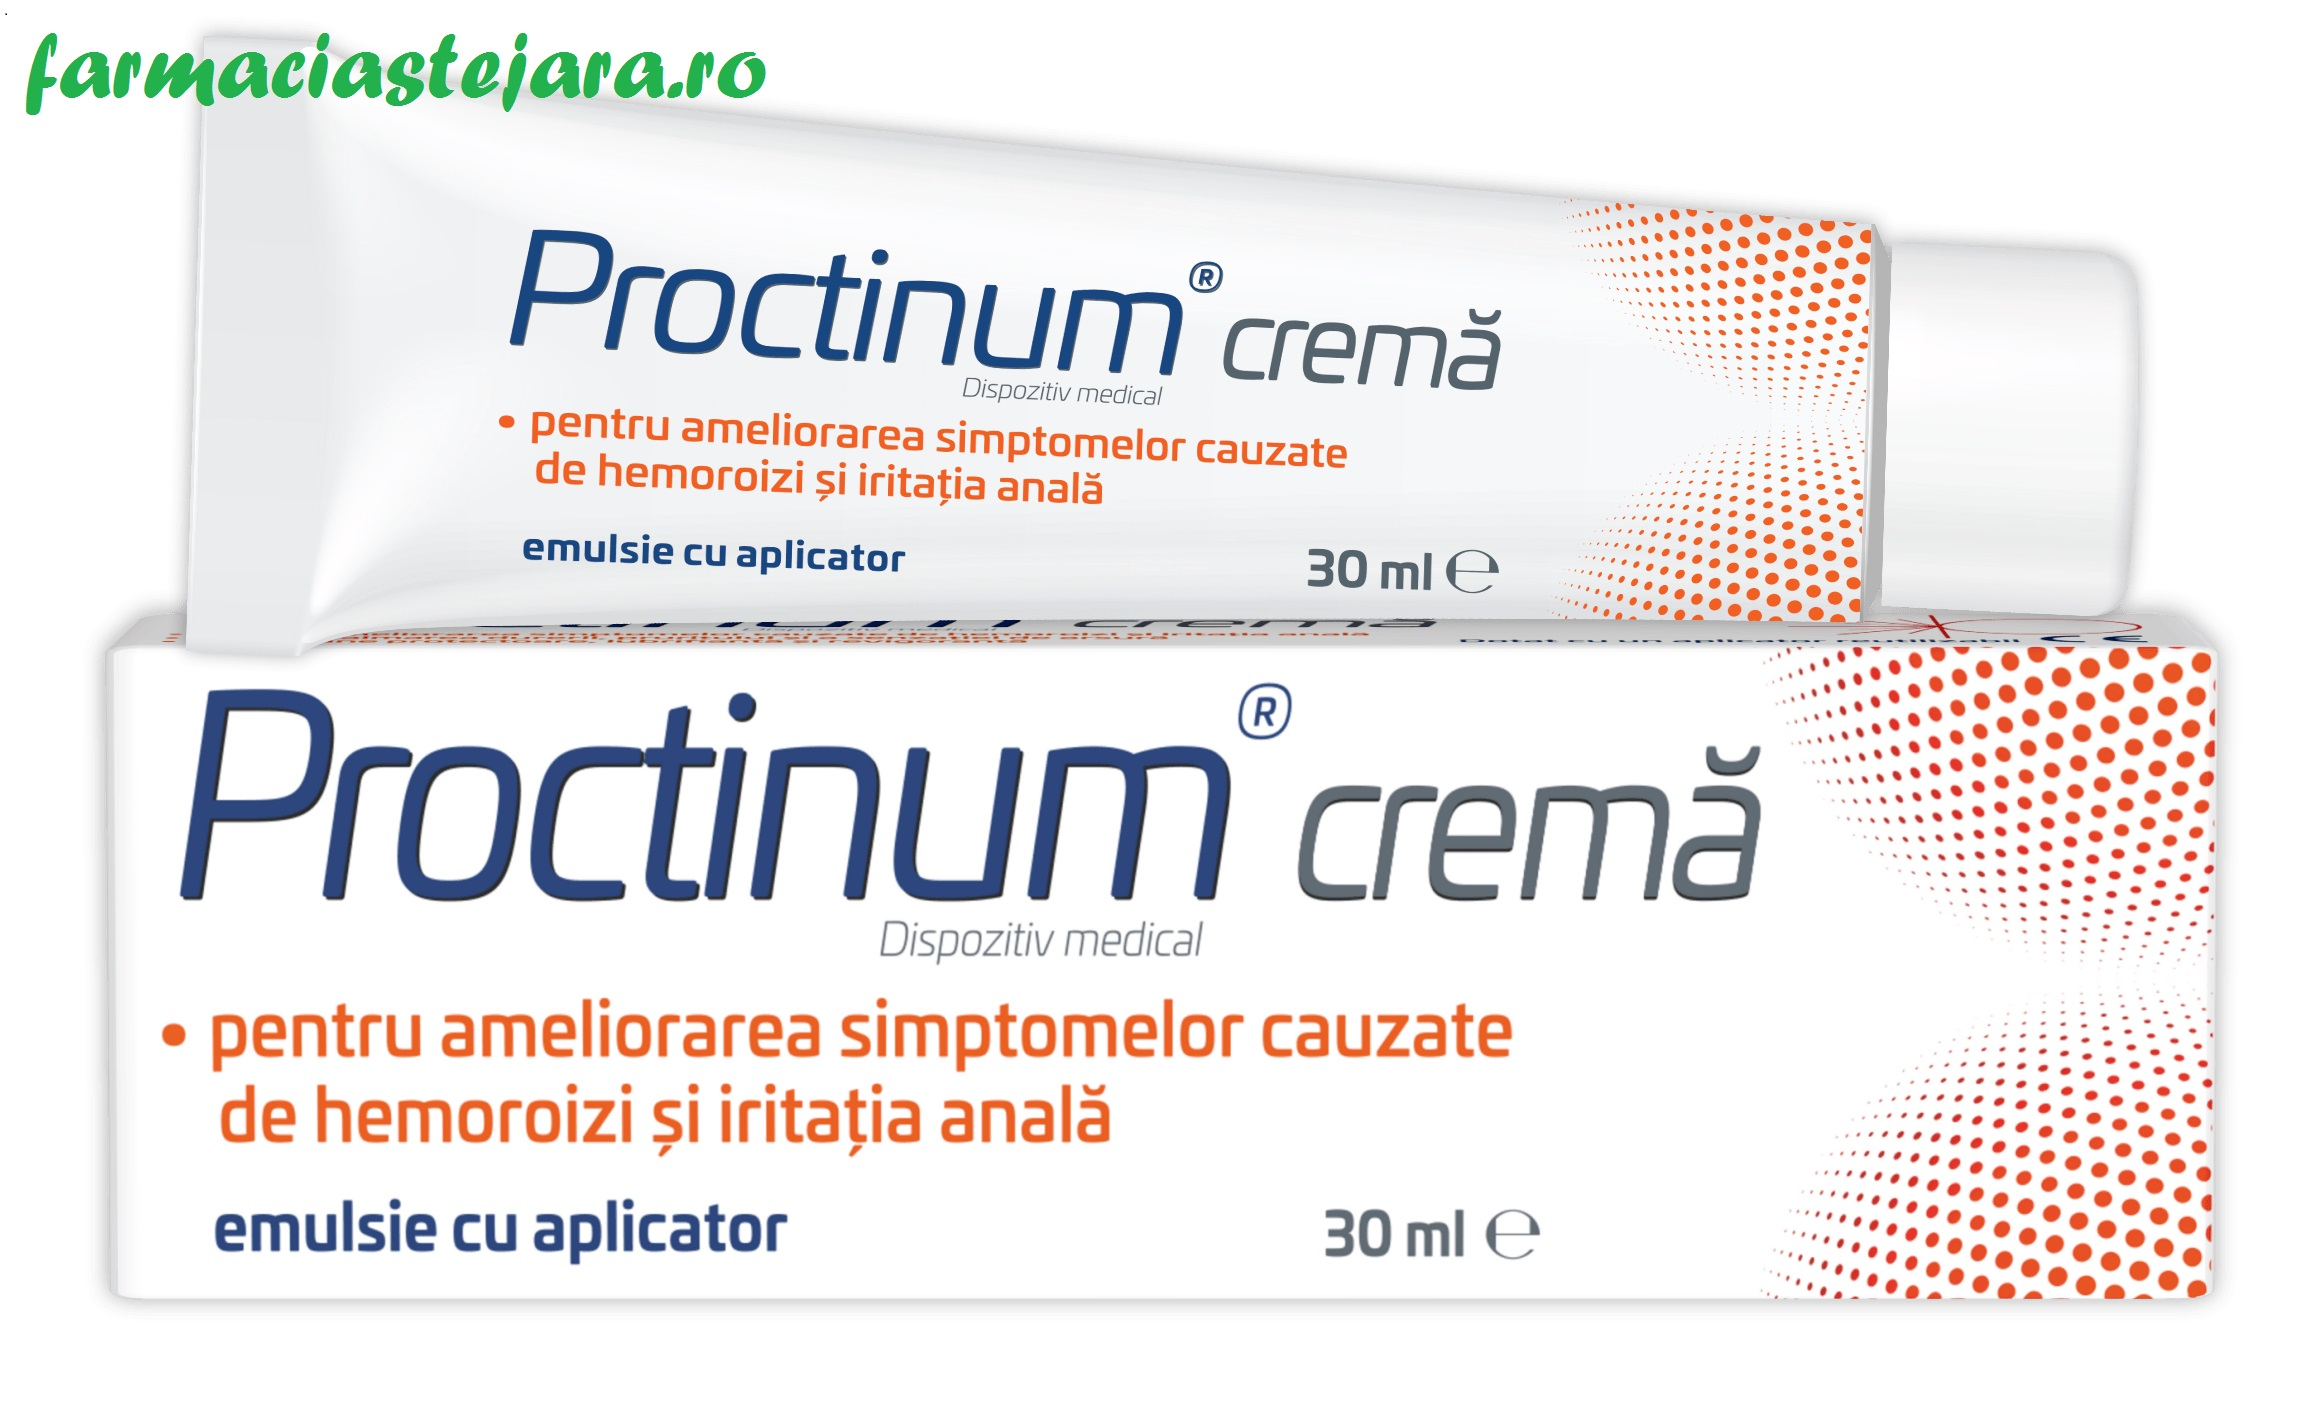 Proctinum crema antihemoroidala 30ml